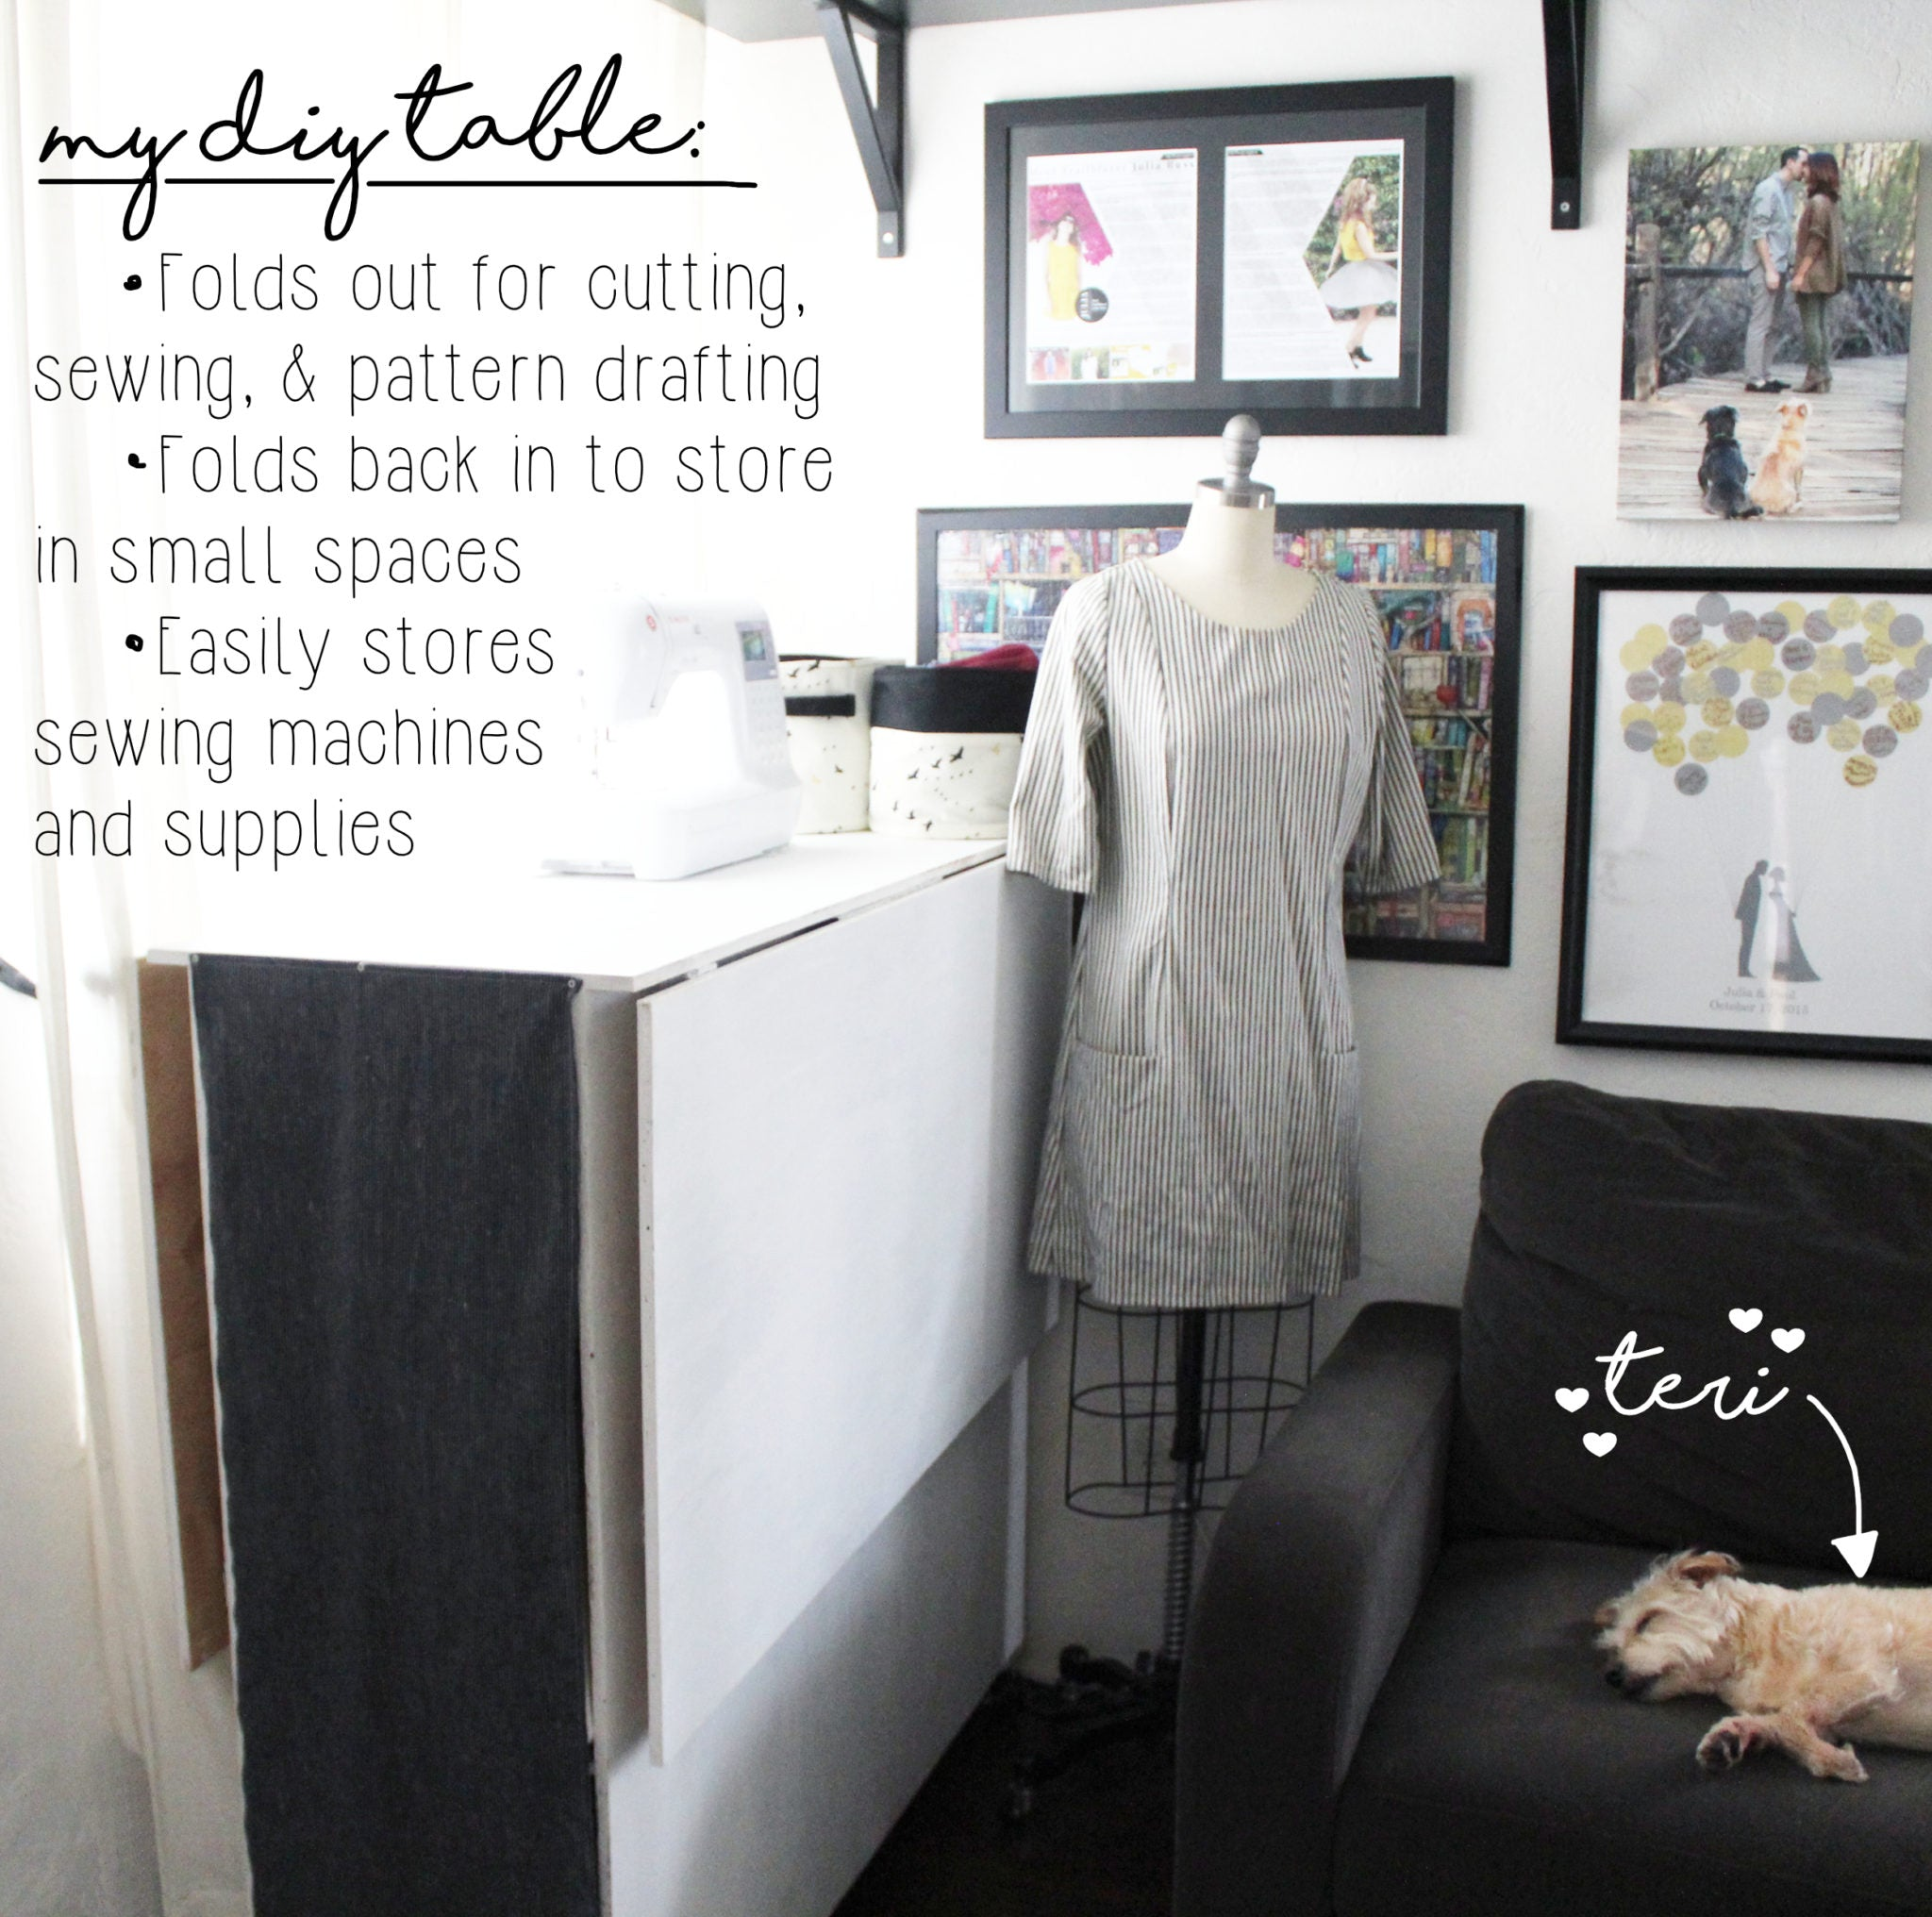 How To Organize My Sewing Space: What Makes Up My DIY Sewing Table